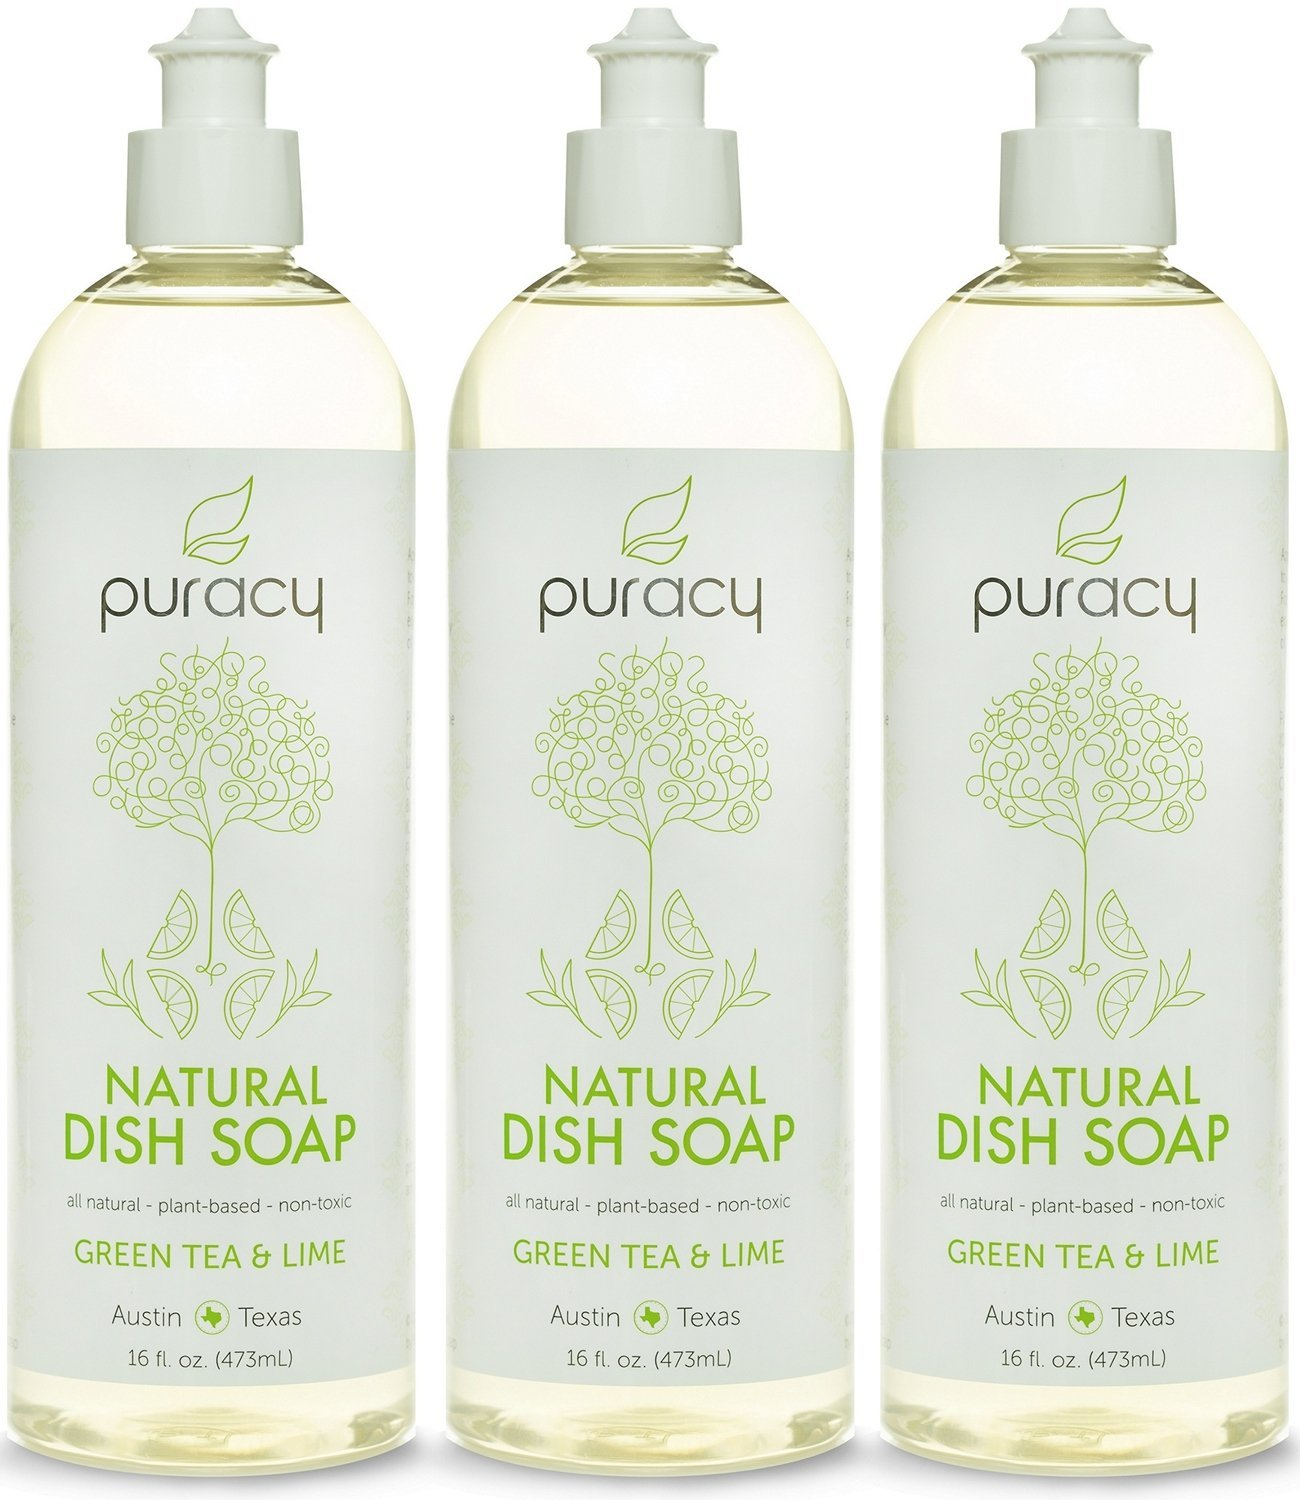 Puracy 100% Natural Liquid Dish Soap